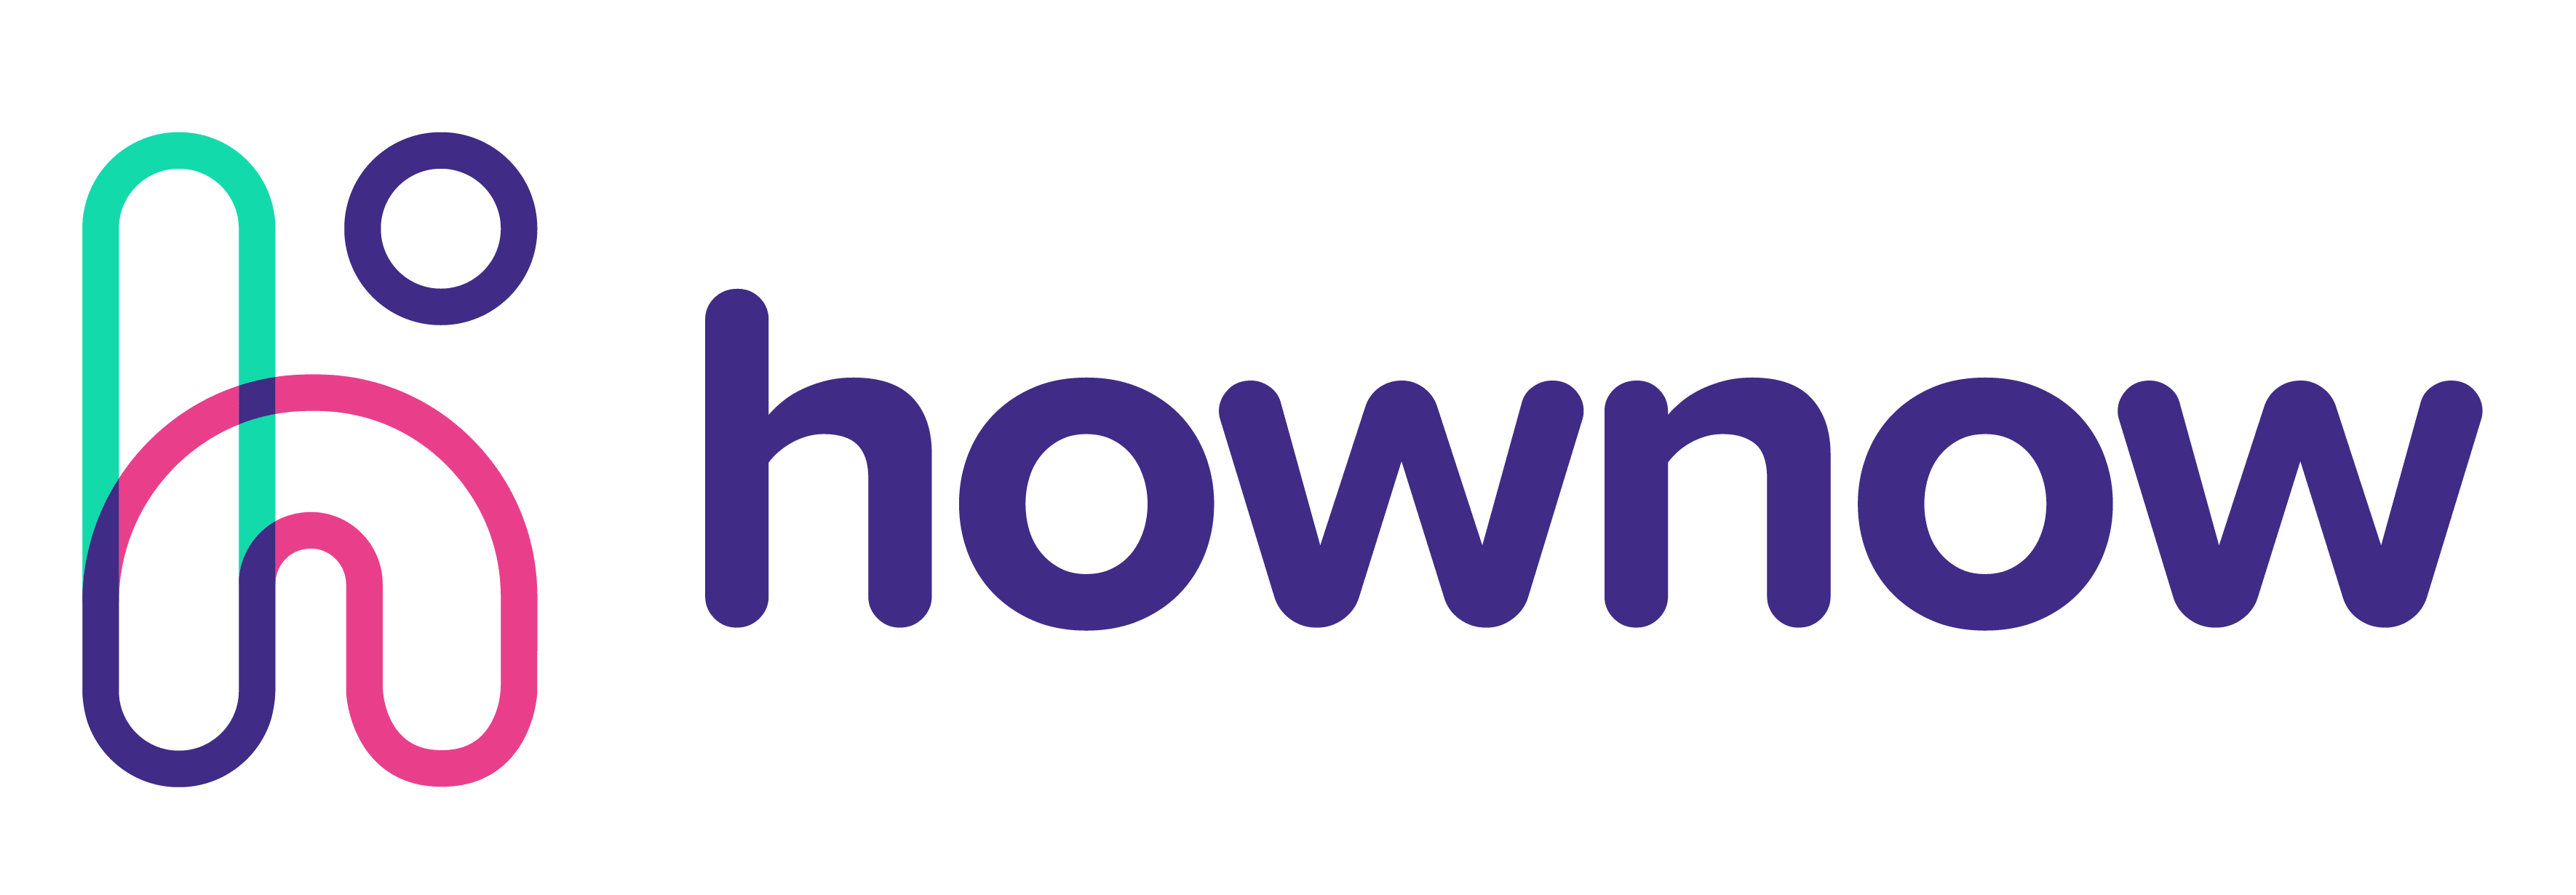 HowNow - hownow-inline-purple@2x-e1577655453661-1.png